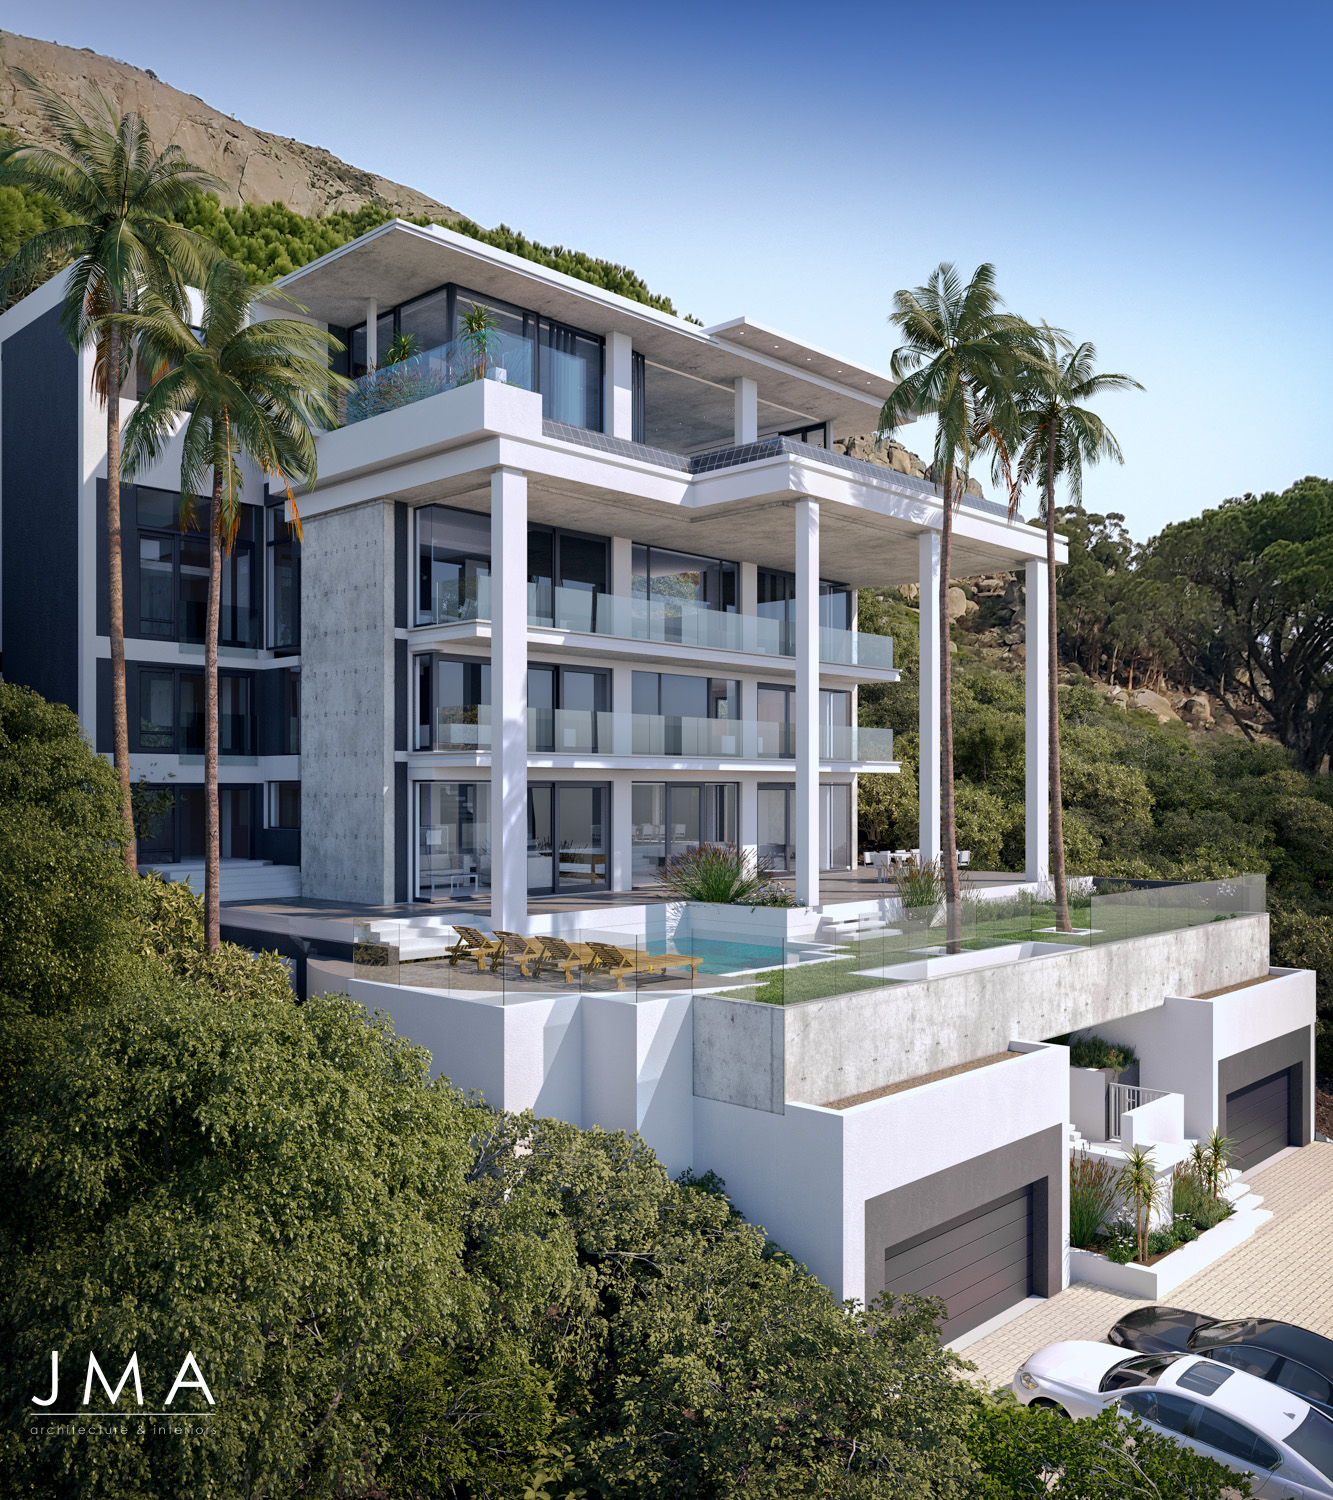 Fresnaye Pool Penthouse external render view - architectural design by Jenny Mills Architects